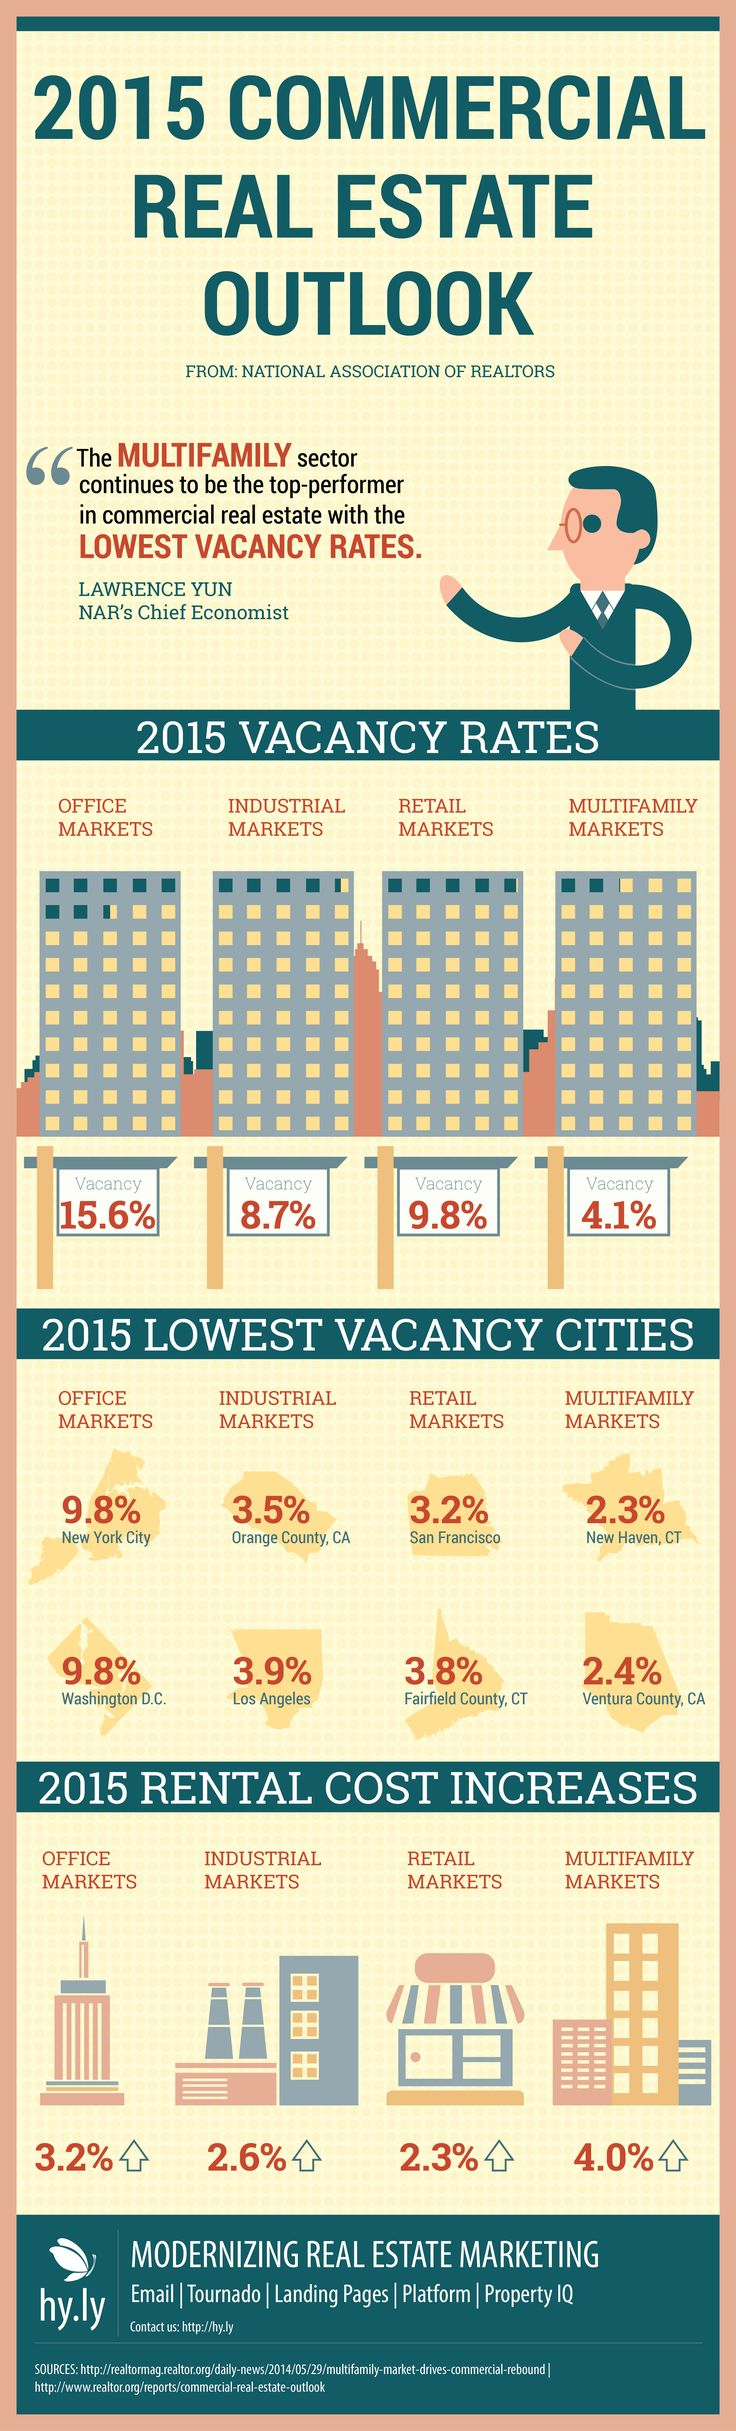 2015 Commercial Real Estate